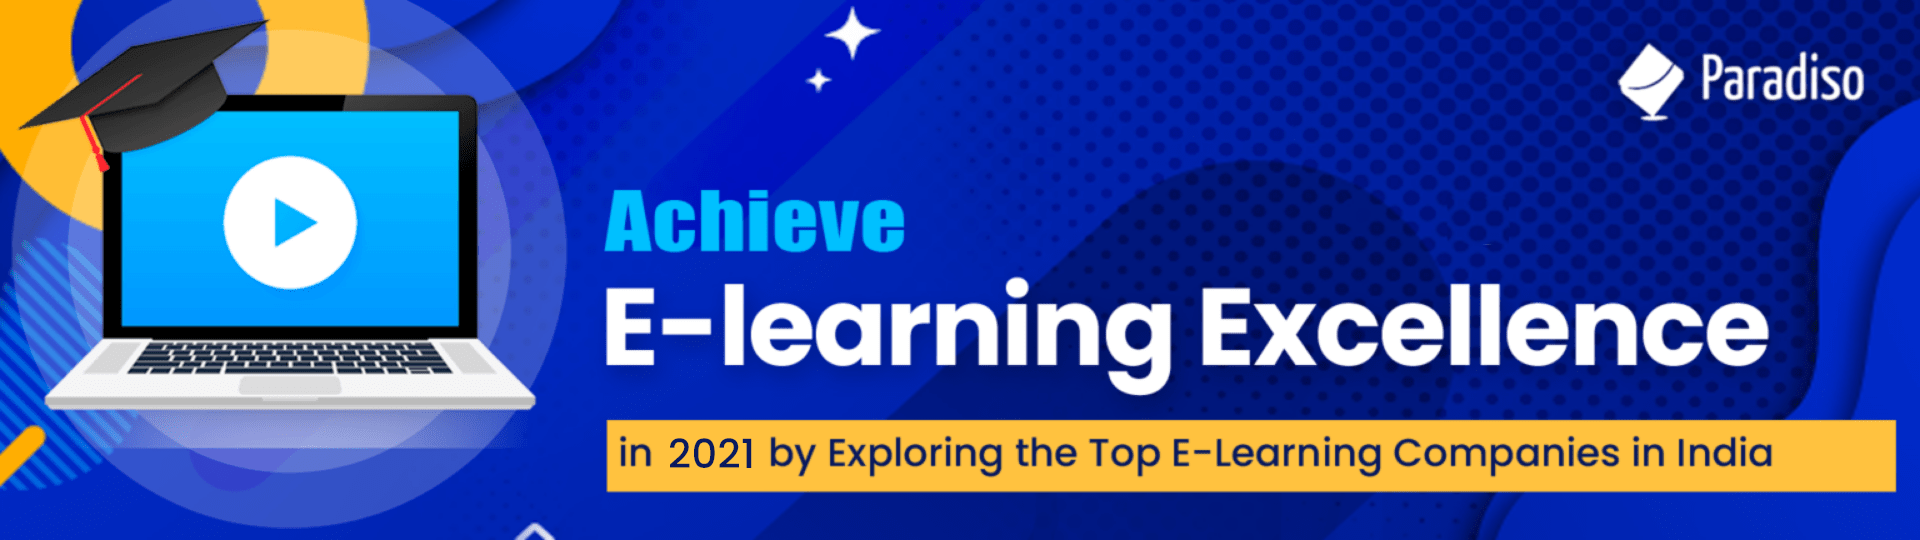 Achieve E-learning Excellence in 2021